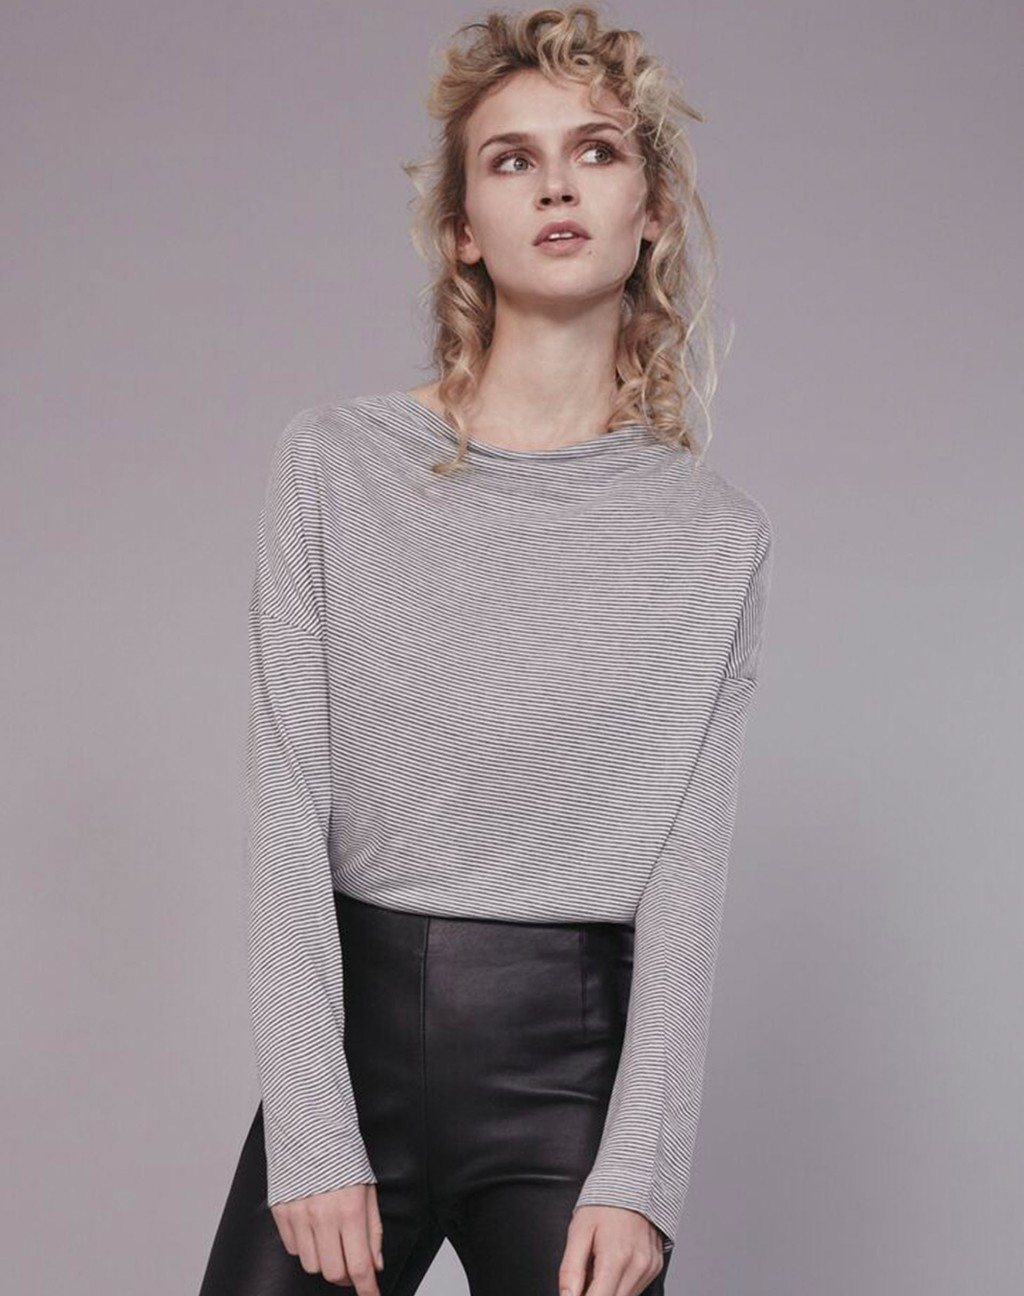 Cowl Neck Tee Grey/Soft White - neckline: round neck; pattern: plain; length: cropped; style: t-shirt; predominant colour: mid grey; occasions: casual, creative work; fibres: cotton - stretch; fit: straight cut; sleeve length: long sleeve; sleeve style: standard; pattern type: fabric; texture group: jersey - stretchy/drapey; season: s/s 2016